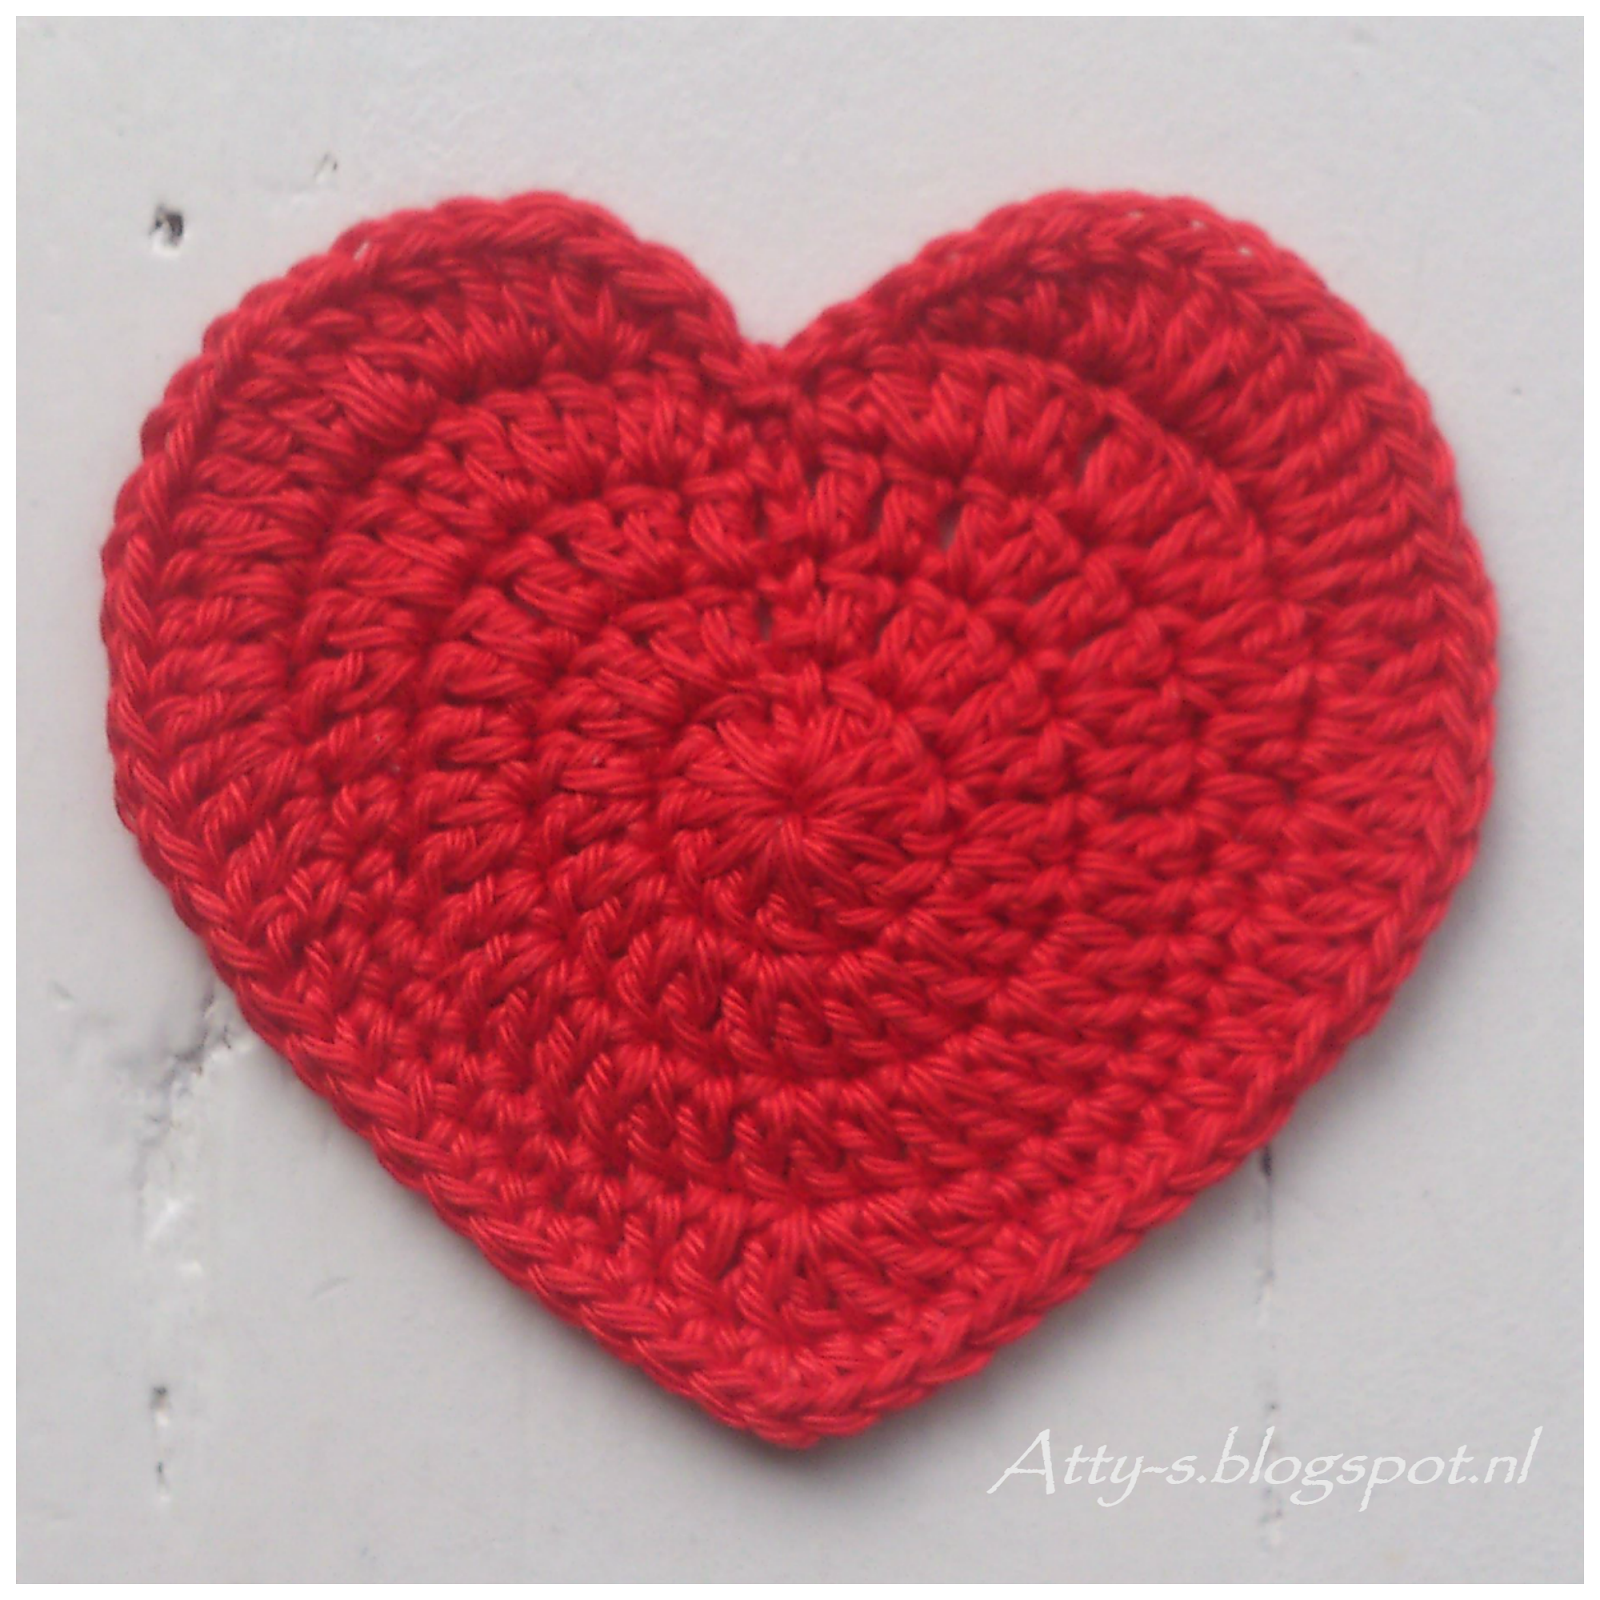 Attys crochet heart valentine coaster pattern cq crochet attys crochet heart valentine coaster pattern cq crochet hearts valentines bankloansurffo Images